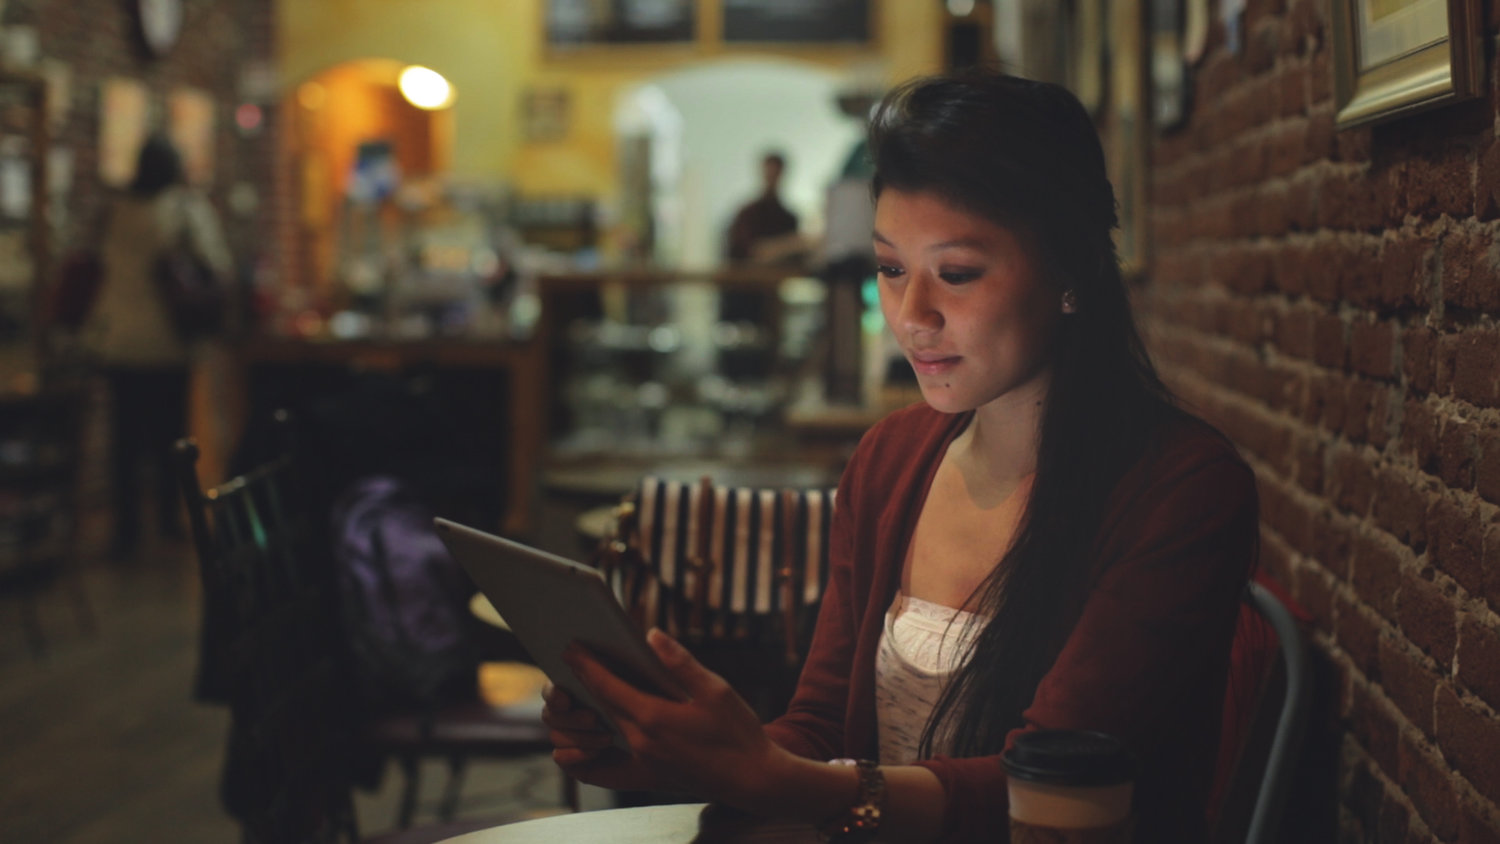 Frame from a Tri Counties Bank commercial shot on location at Mugshots Coffee in Oroville, CA.